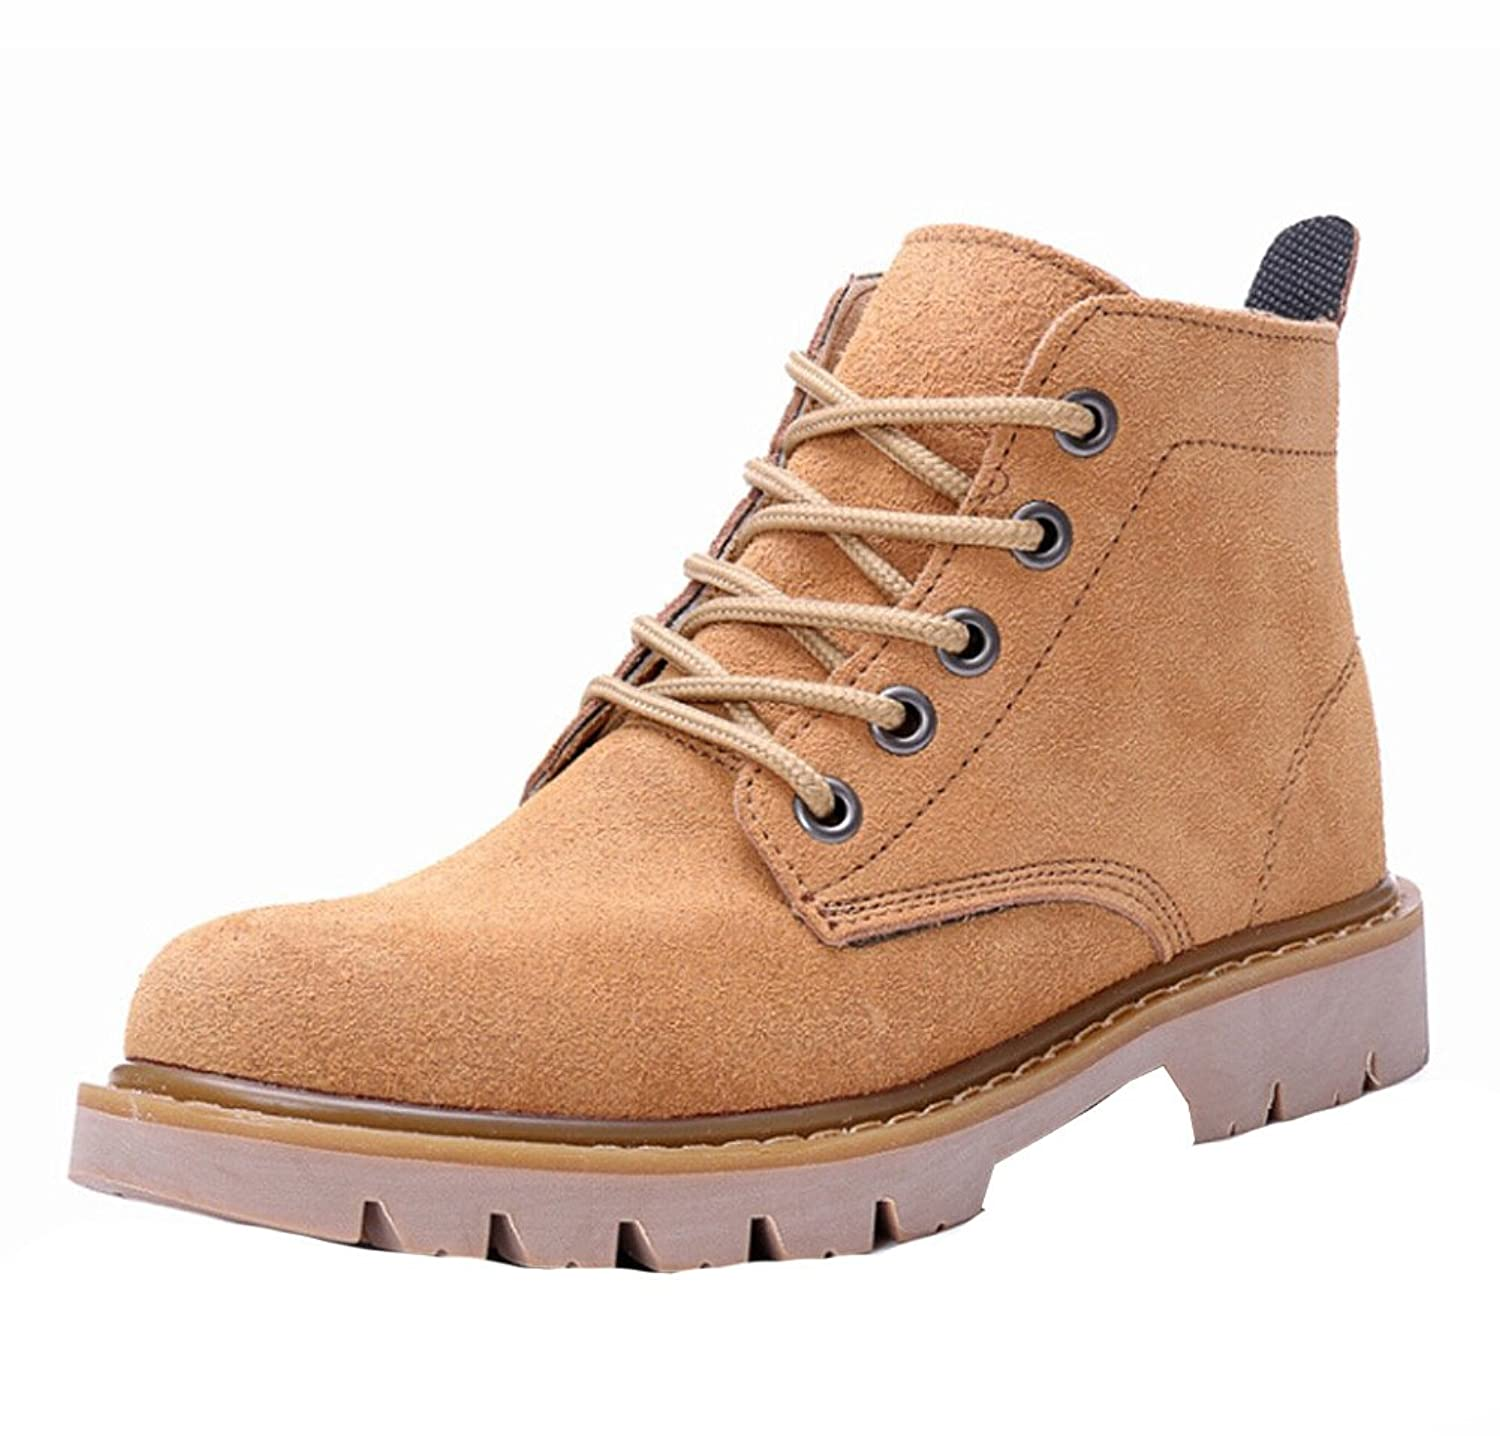 Women's Combat Genuine Leather Lace up Martin Boot Waterproof Hiking Work Ankle Boot